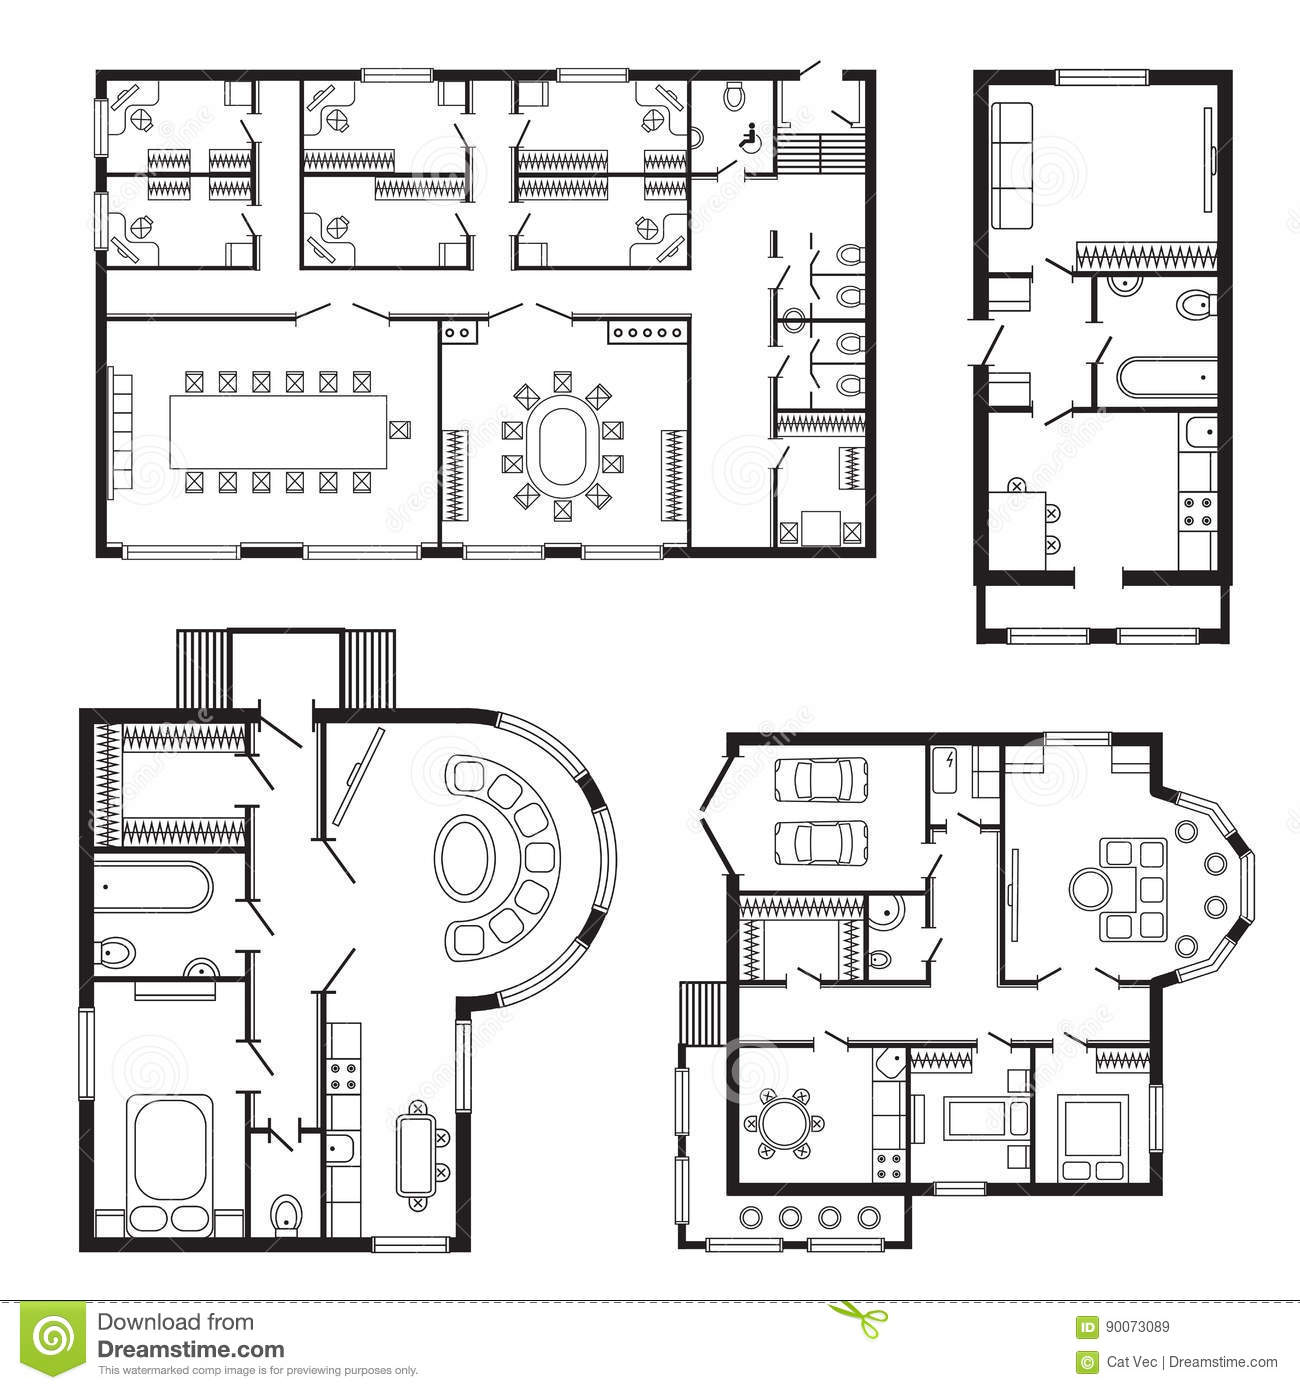 Superb Modern Office Architectural Plan Interior Furniture And Construction Design  Drawing Project Stock Vector   Illustration Of Blueprint, Drawing: 90073089